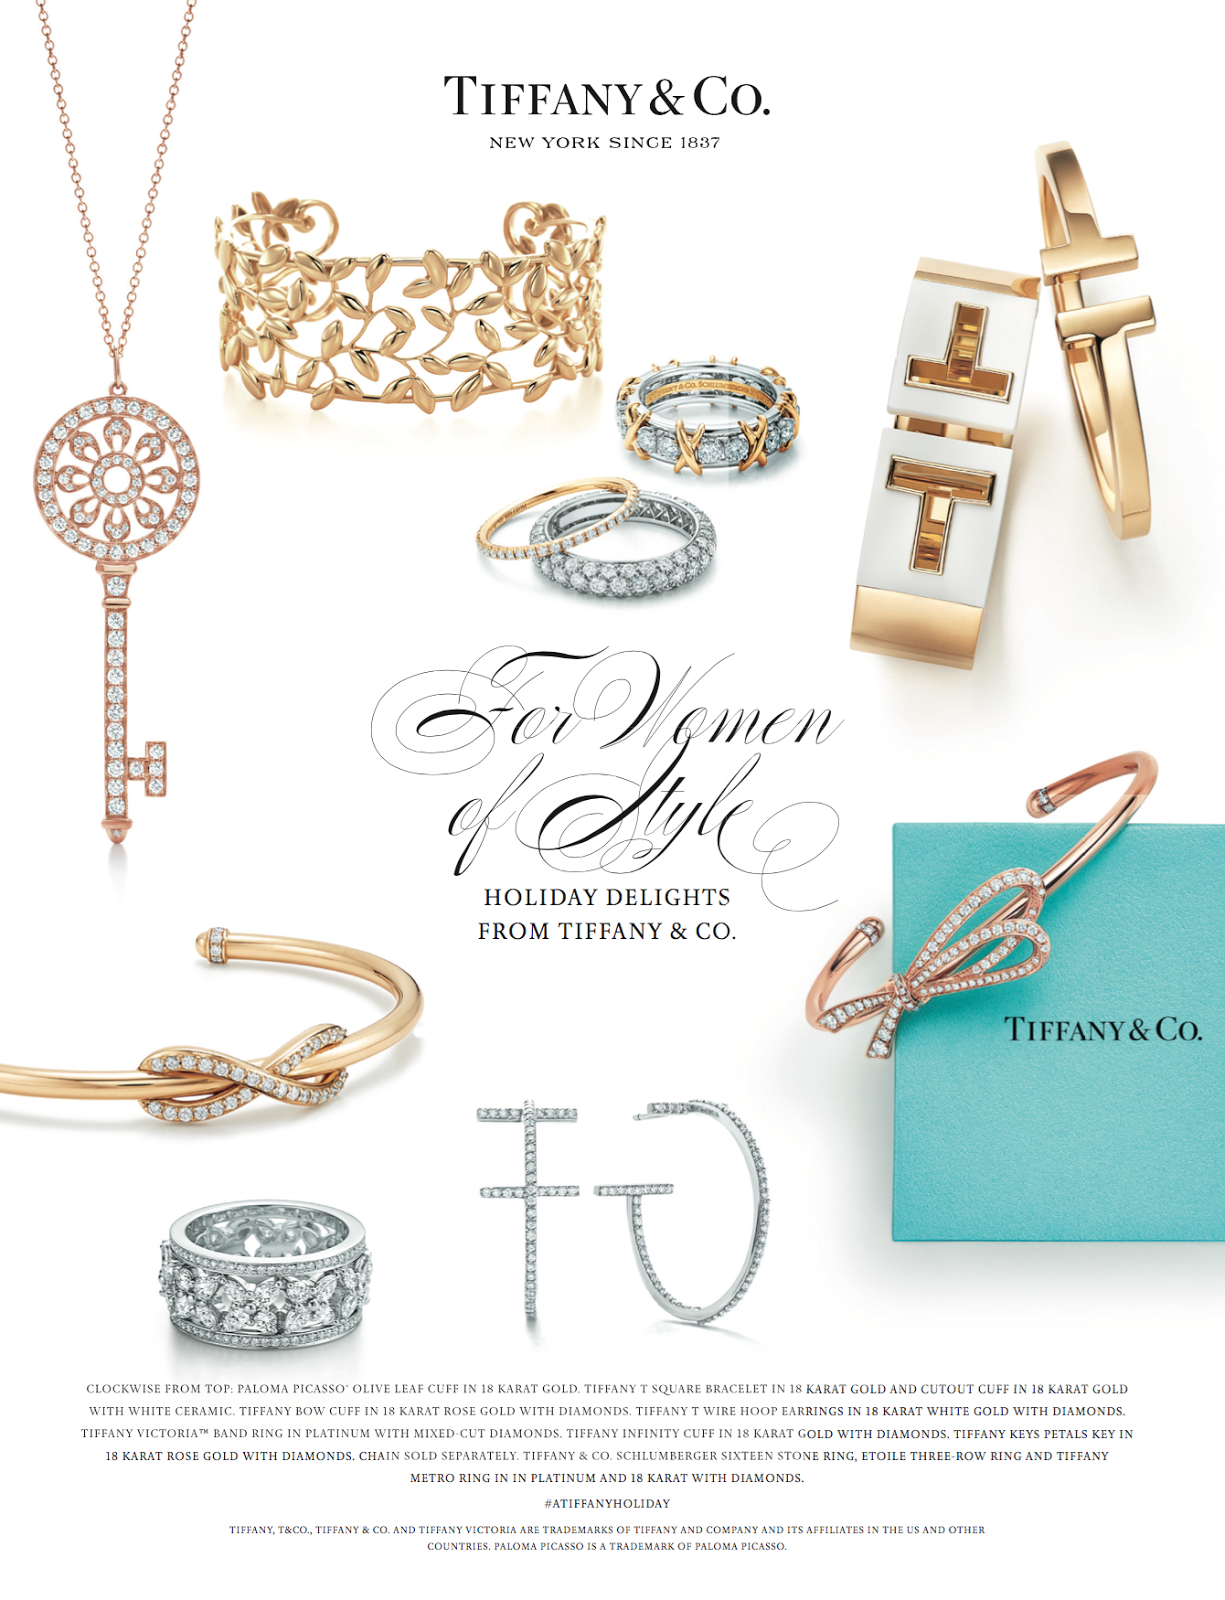 Tiffany & Co Christmas Gifting Ideas For Him and Her!